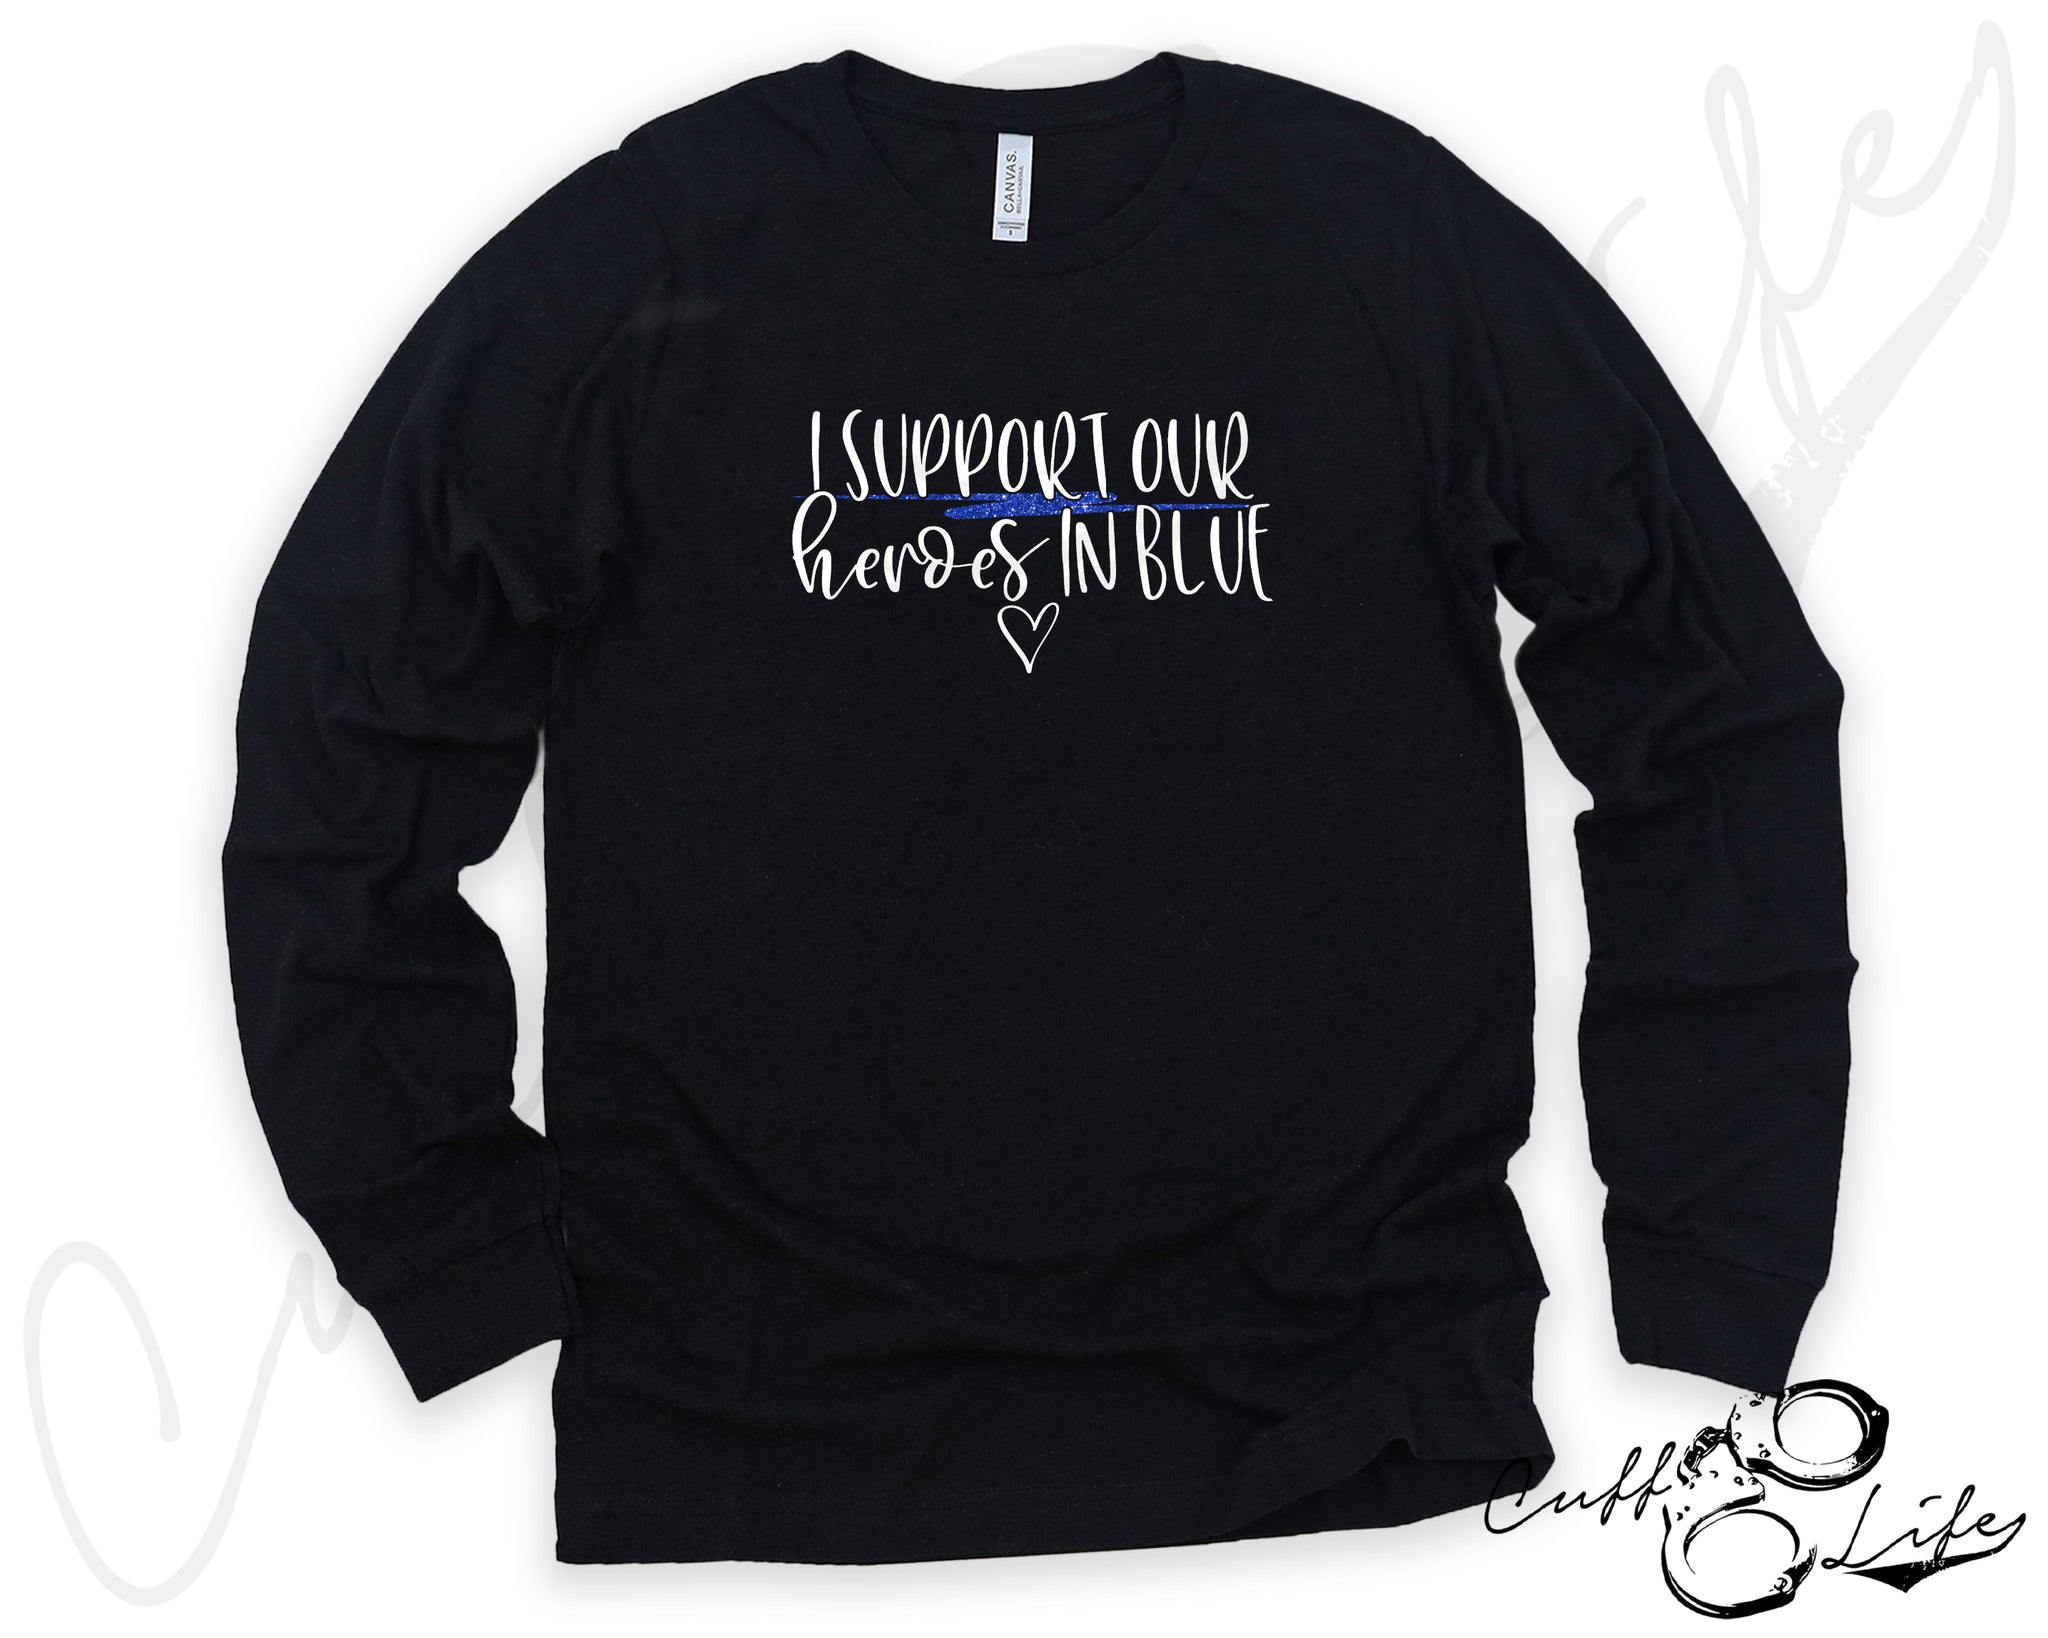 I Support Our Heroes in Blue © - Long Sleeve Tee